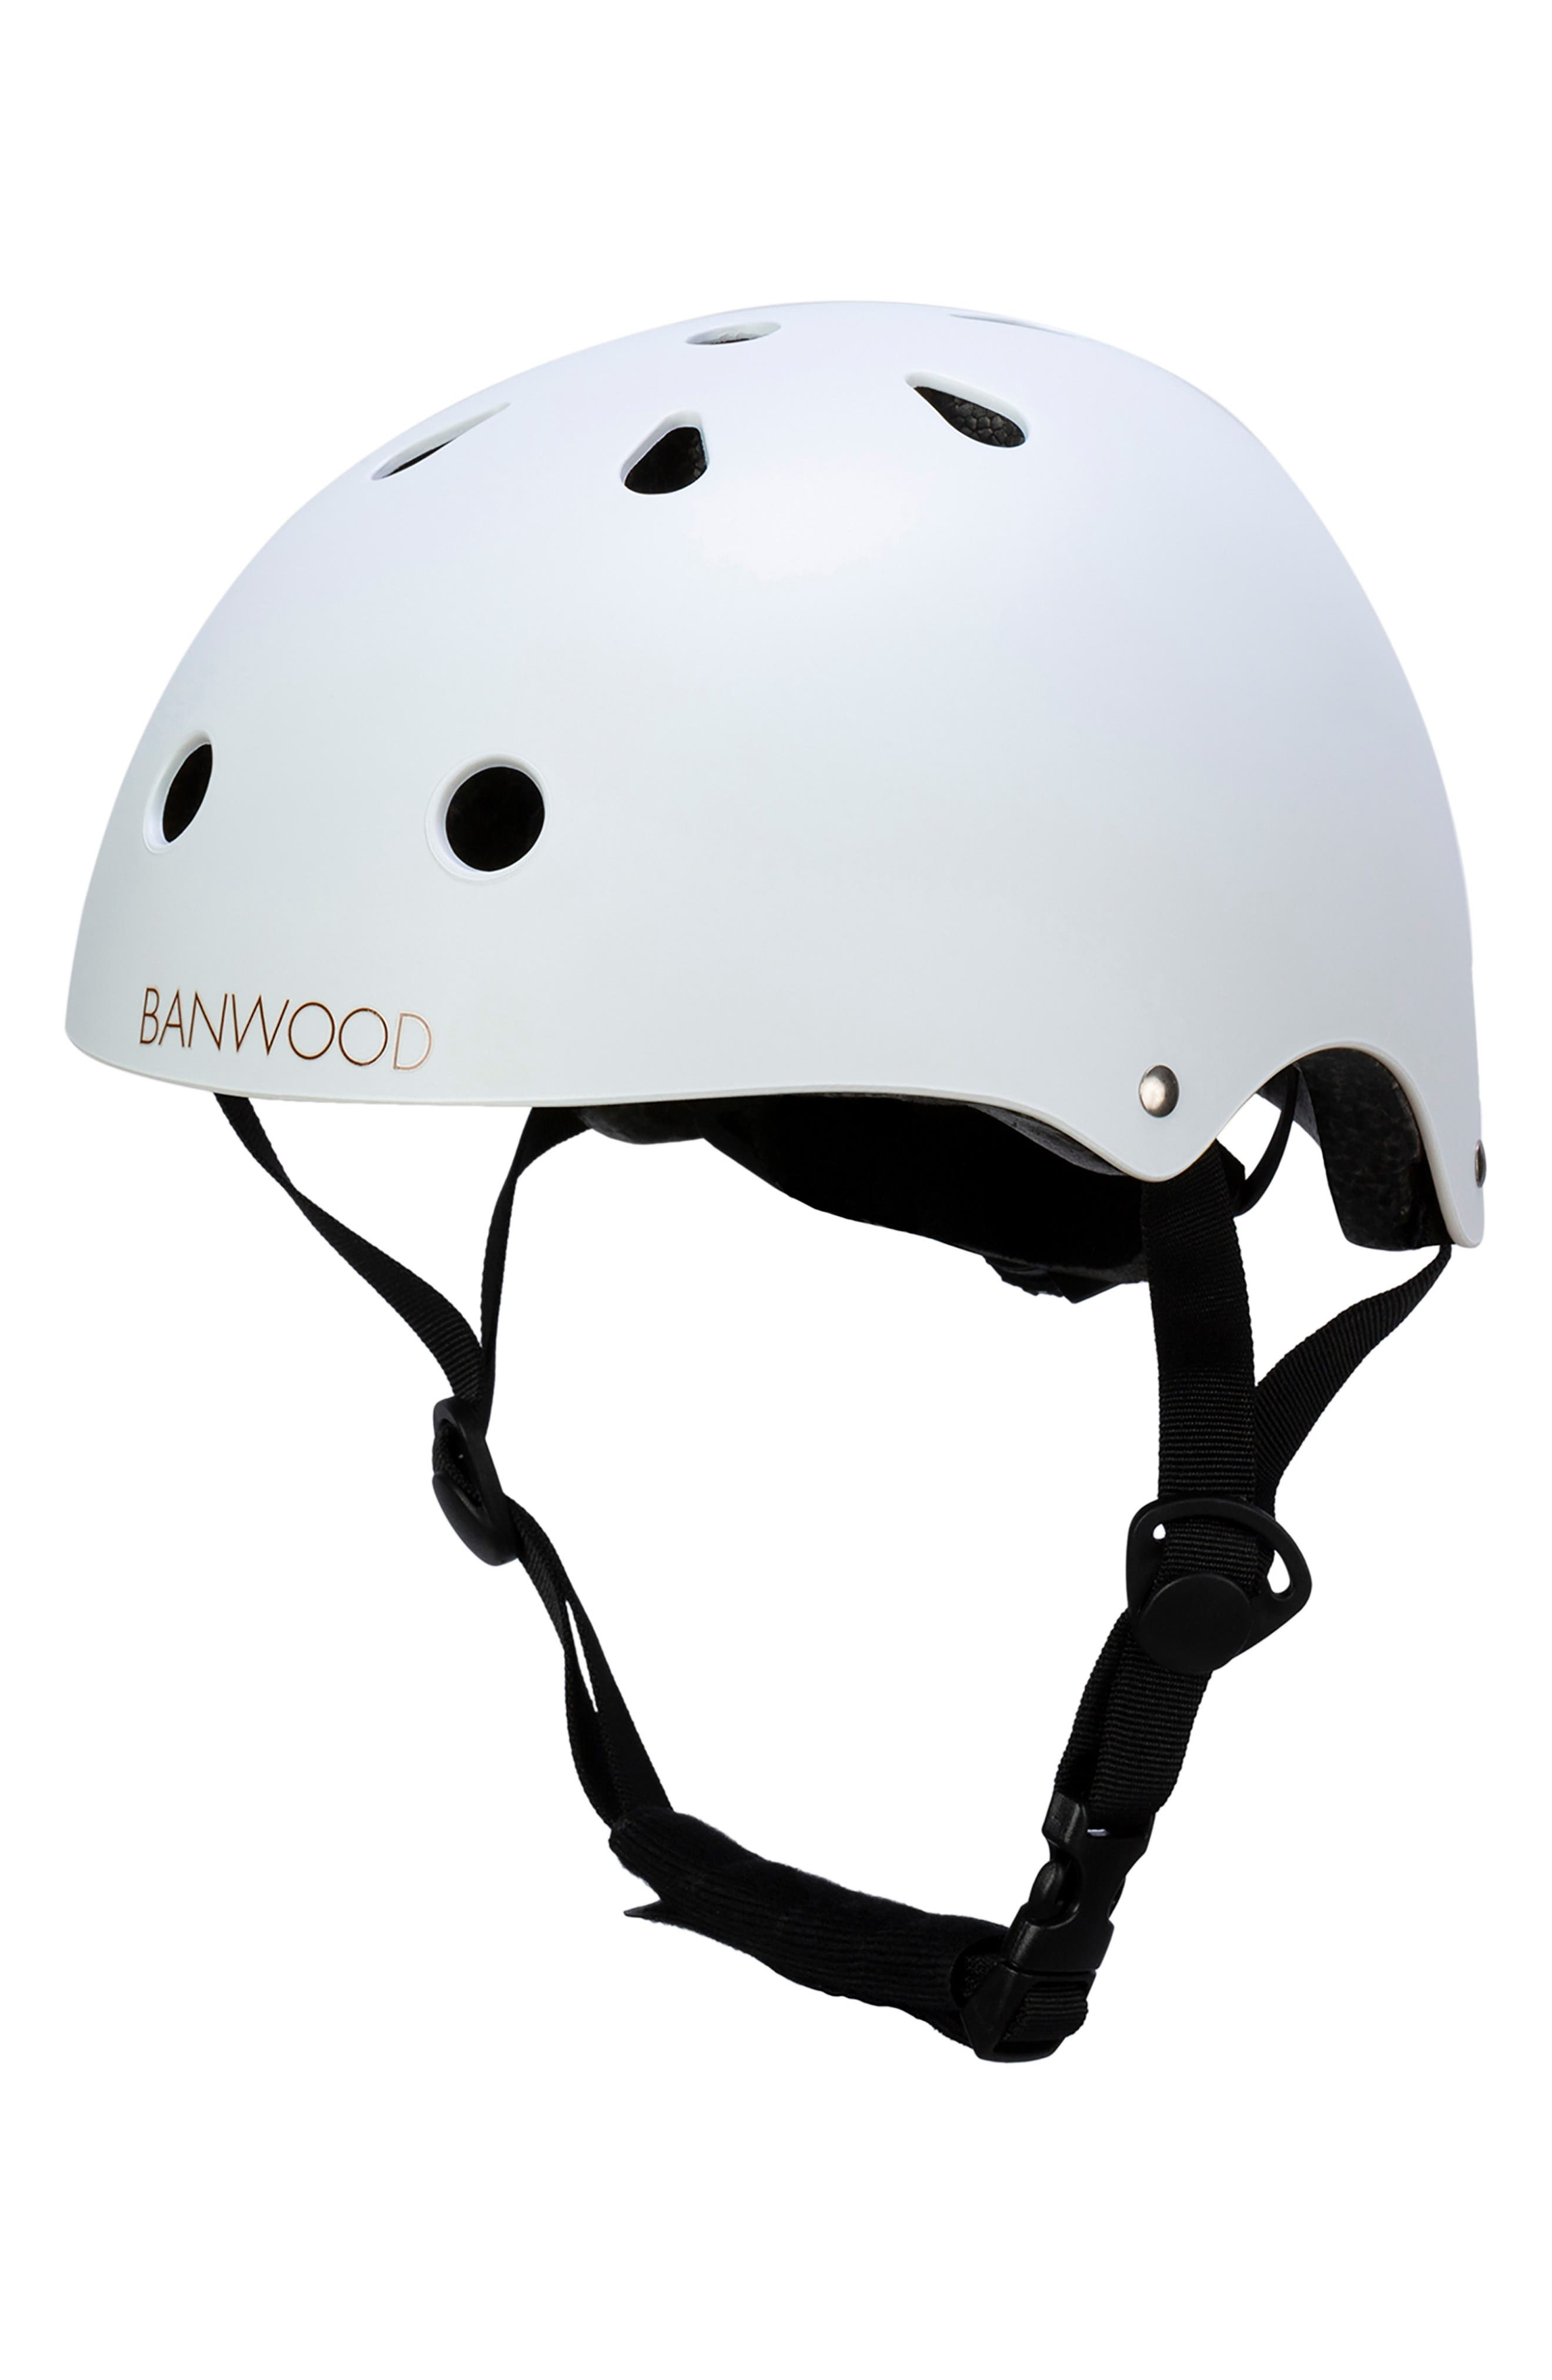 Banwood Bike Helmet